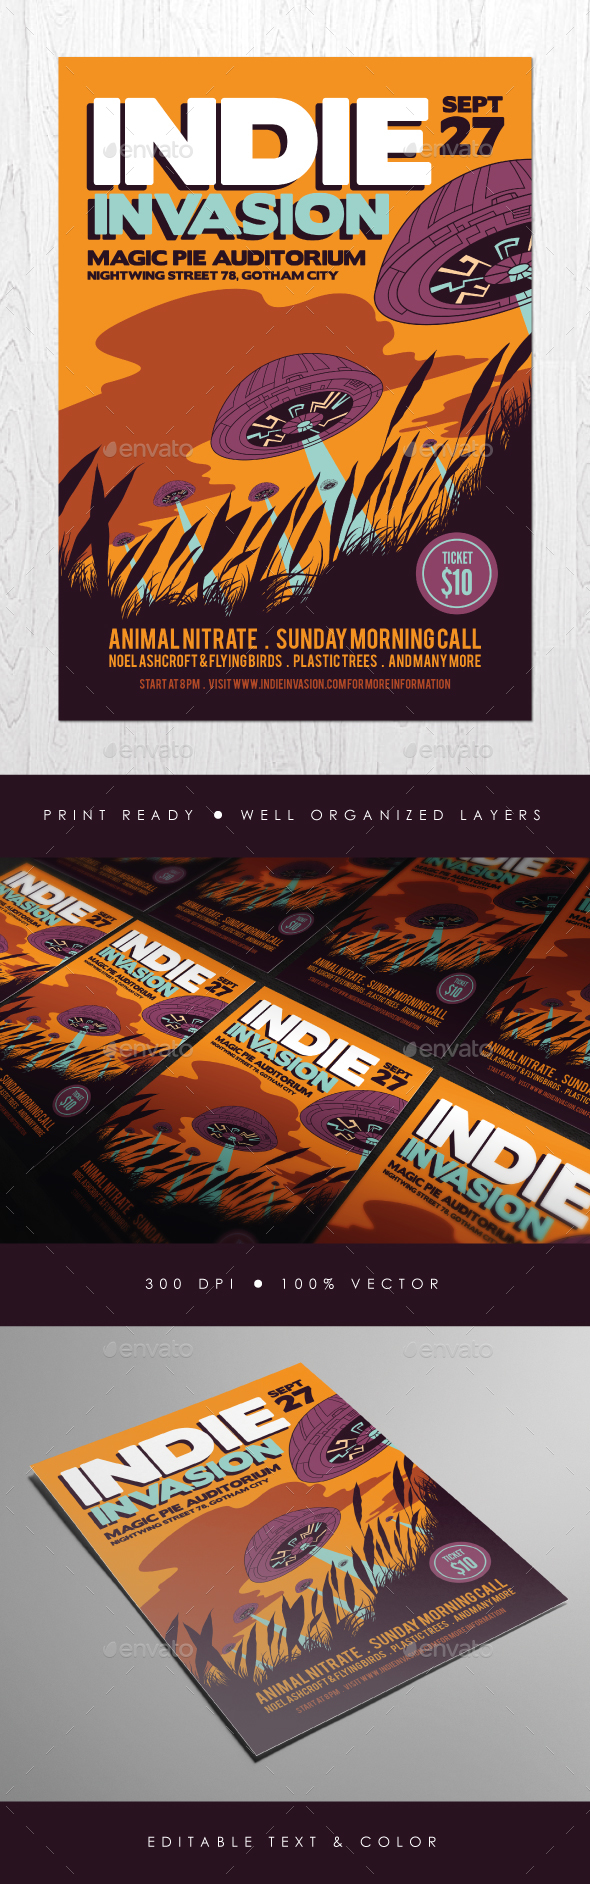 Indie Invasion Flyer - Events Flyers